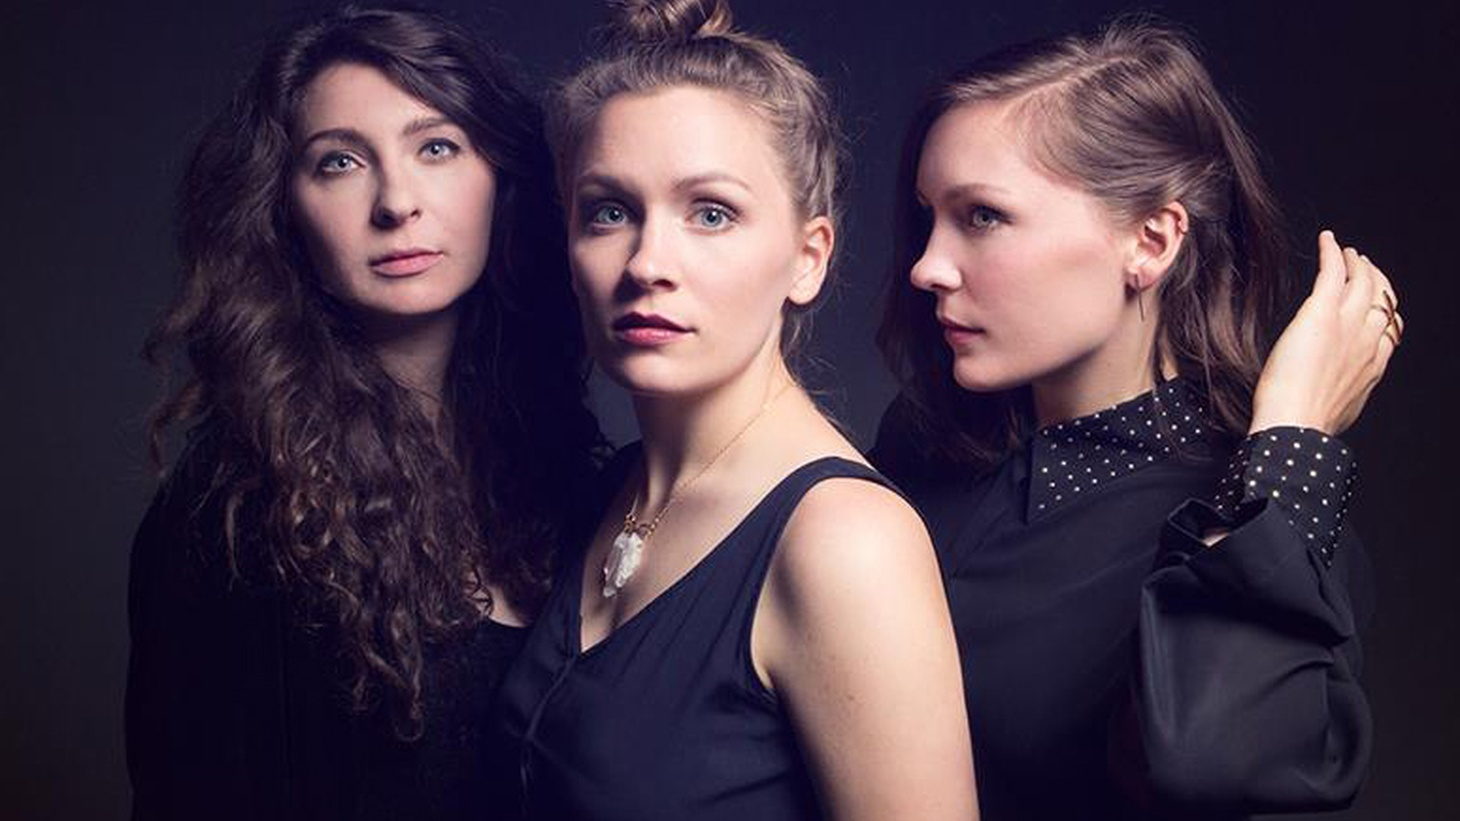 Joseph are a trio of harmonizing sisters from the Pacific Northwest that will release their album debut in August.